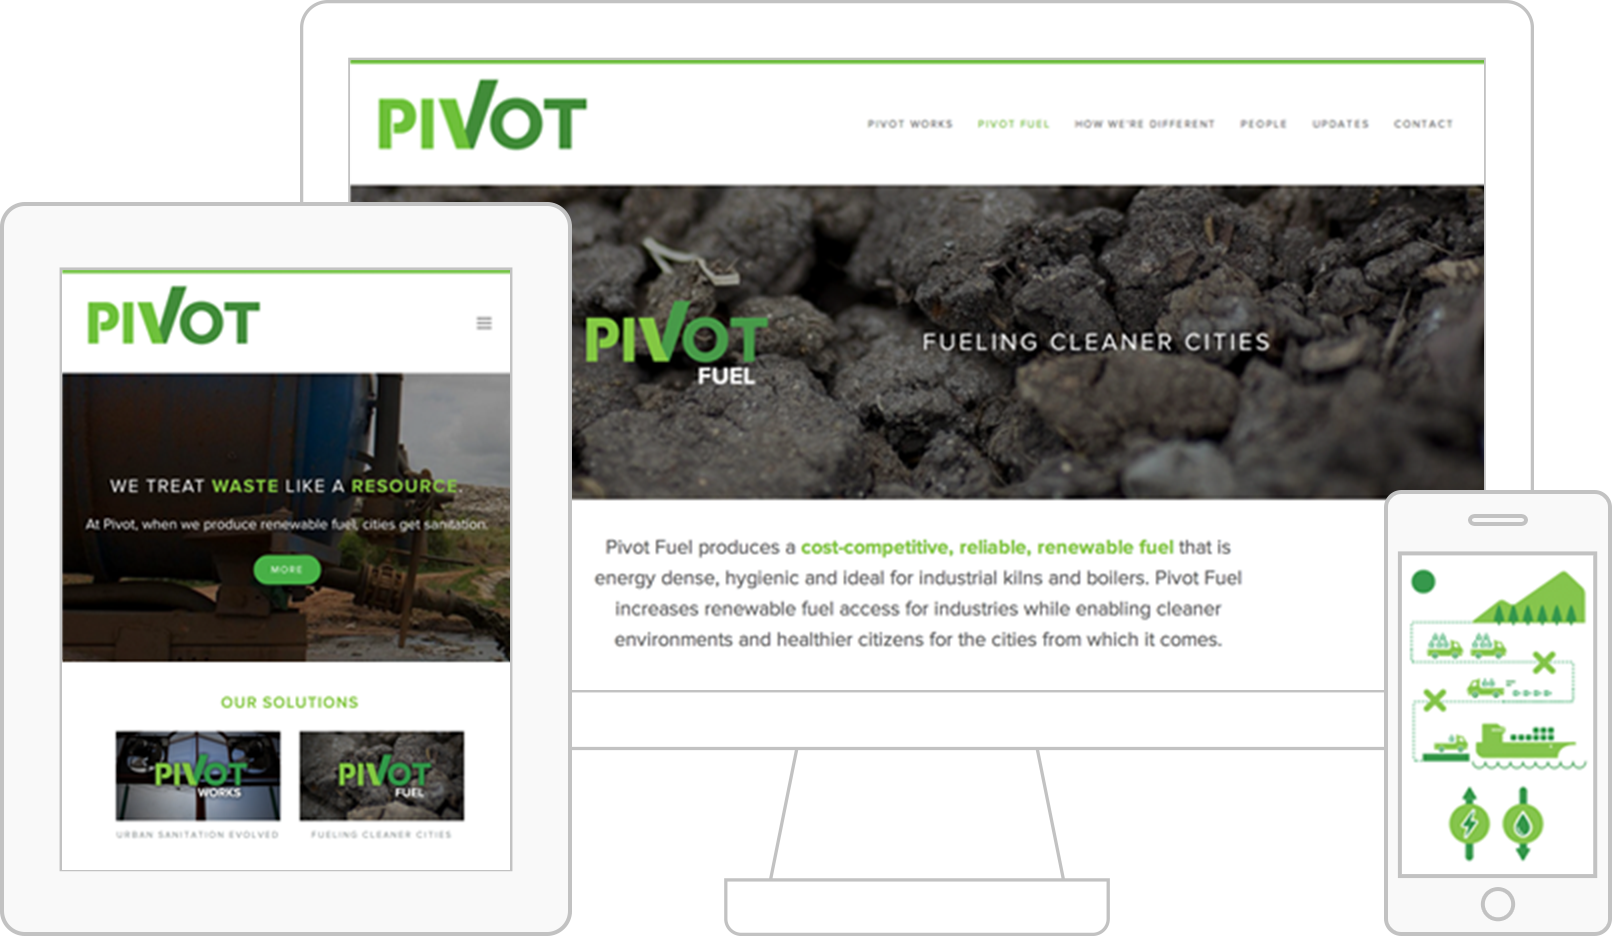 pivot-image-devices